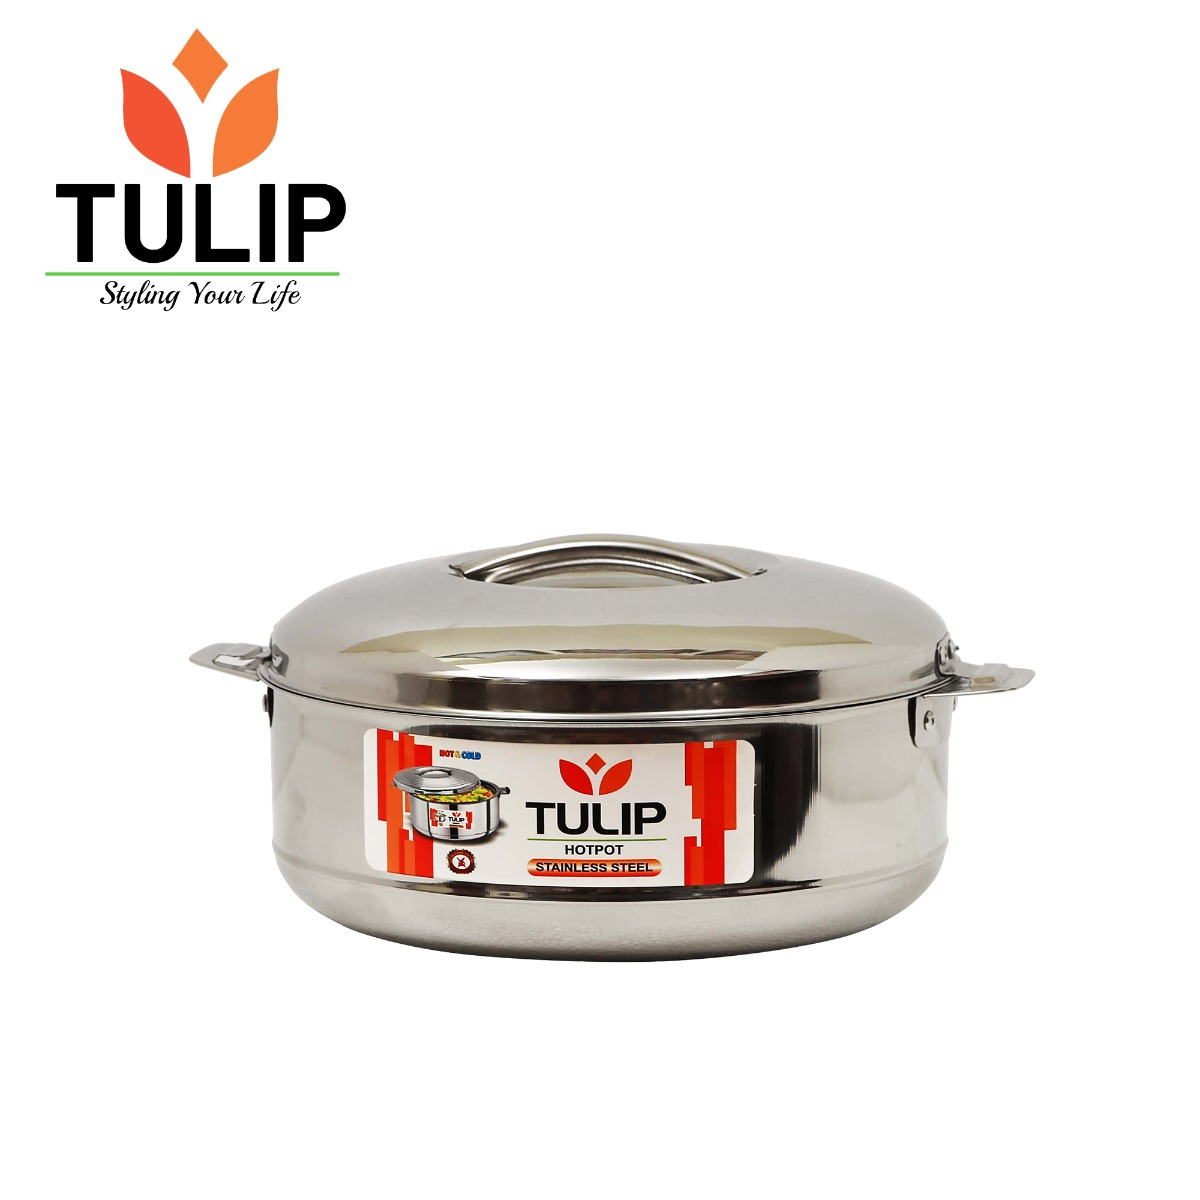 Tulip Steel Casserole / Hotpot / Hotcase with Lid - 1000ml